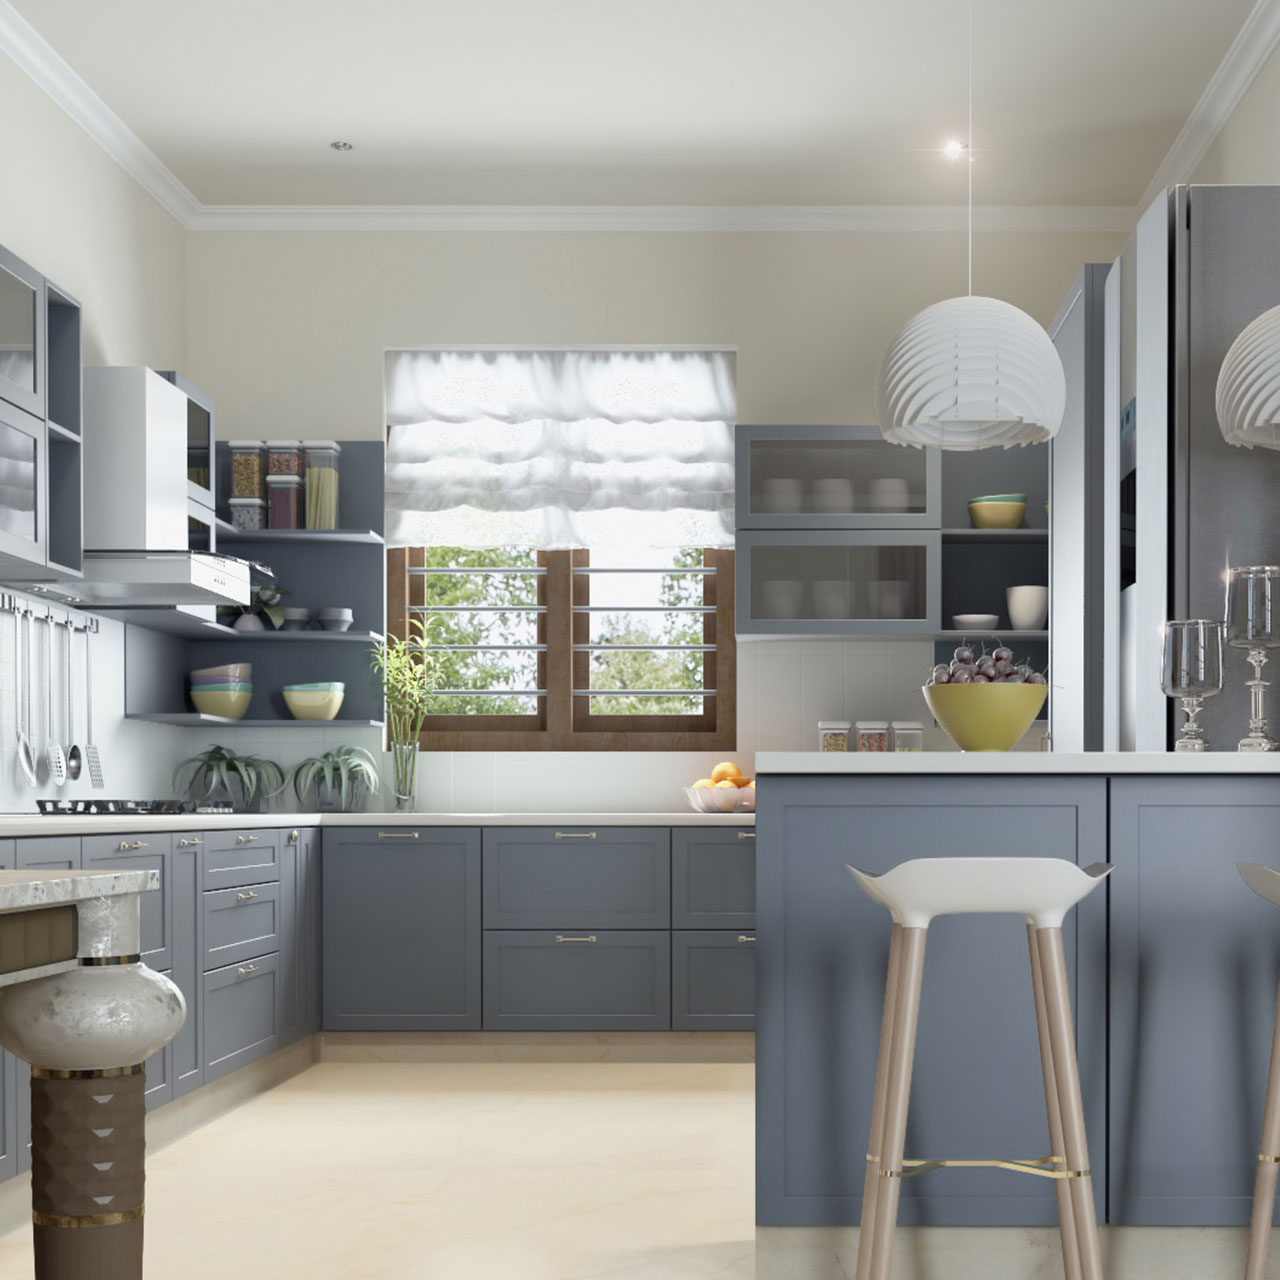 Don't Cook Up A Mess! Kitchen Design Mistakes To Avoid In Your Kitchen